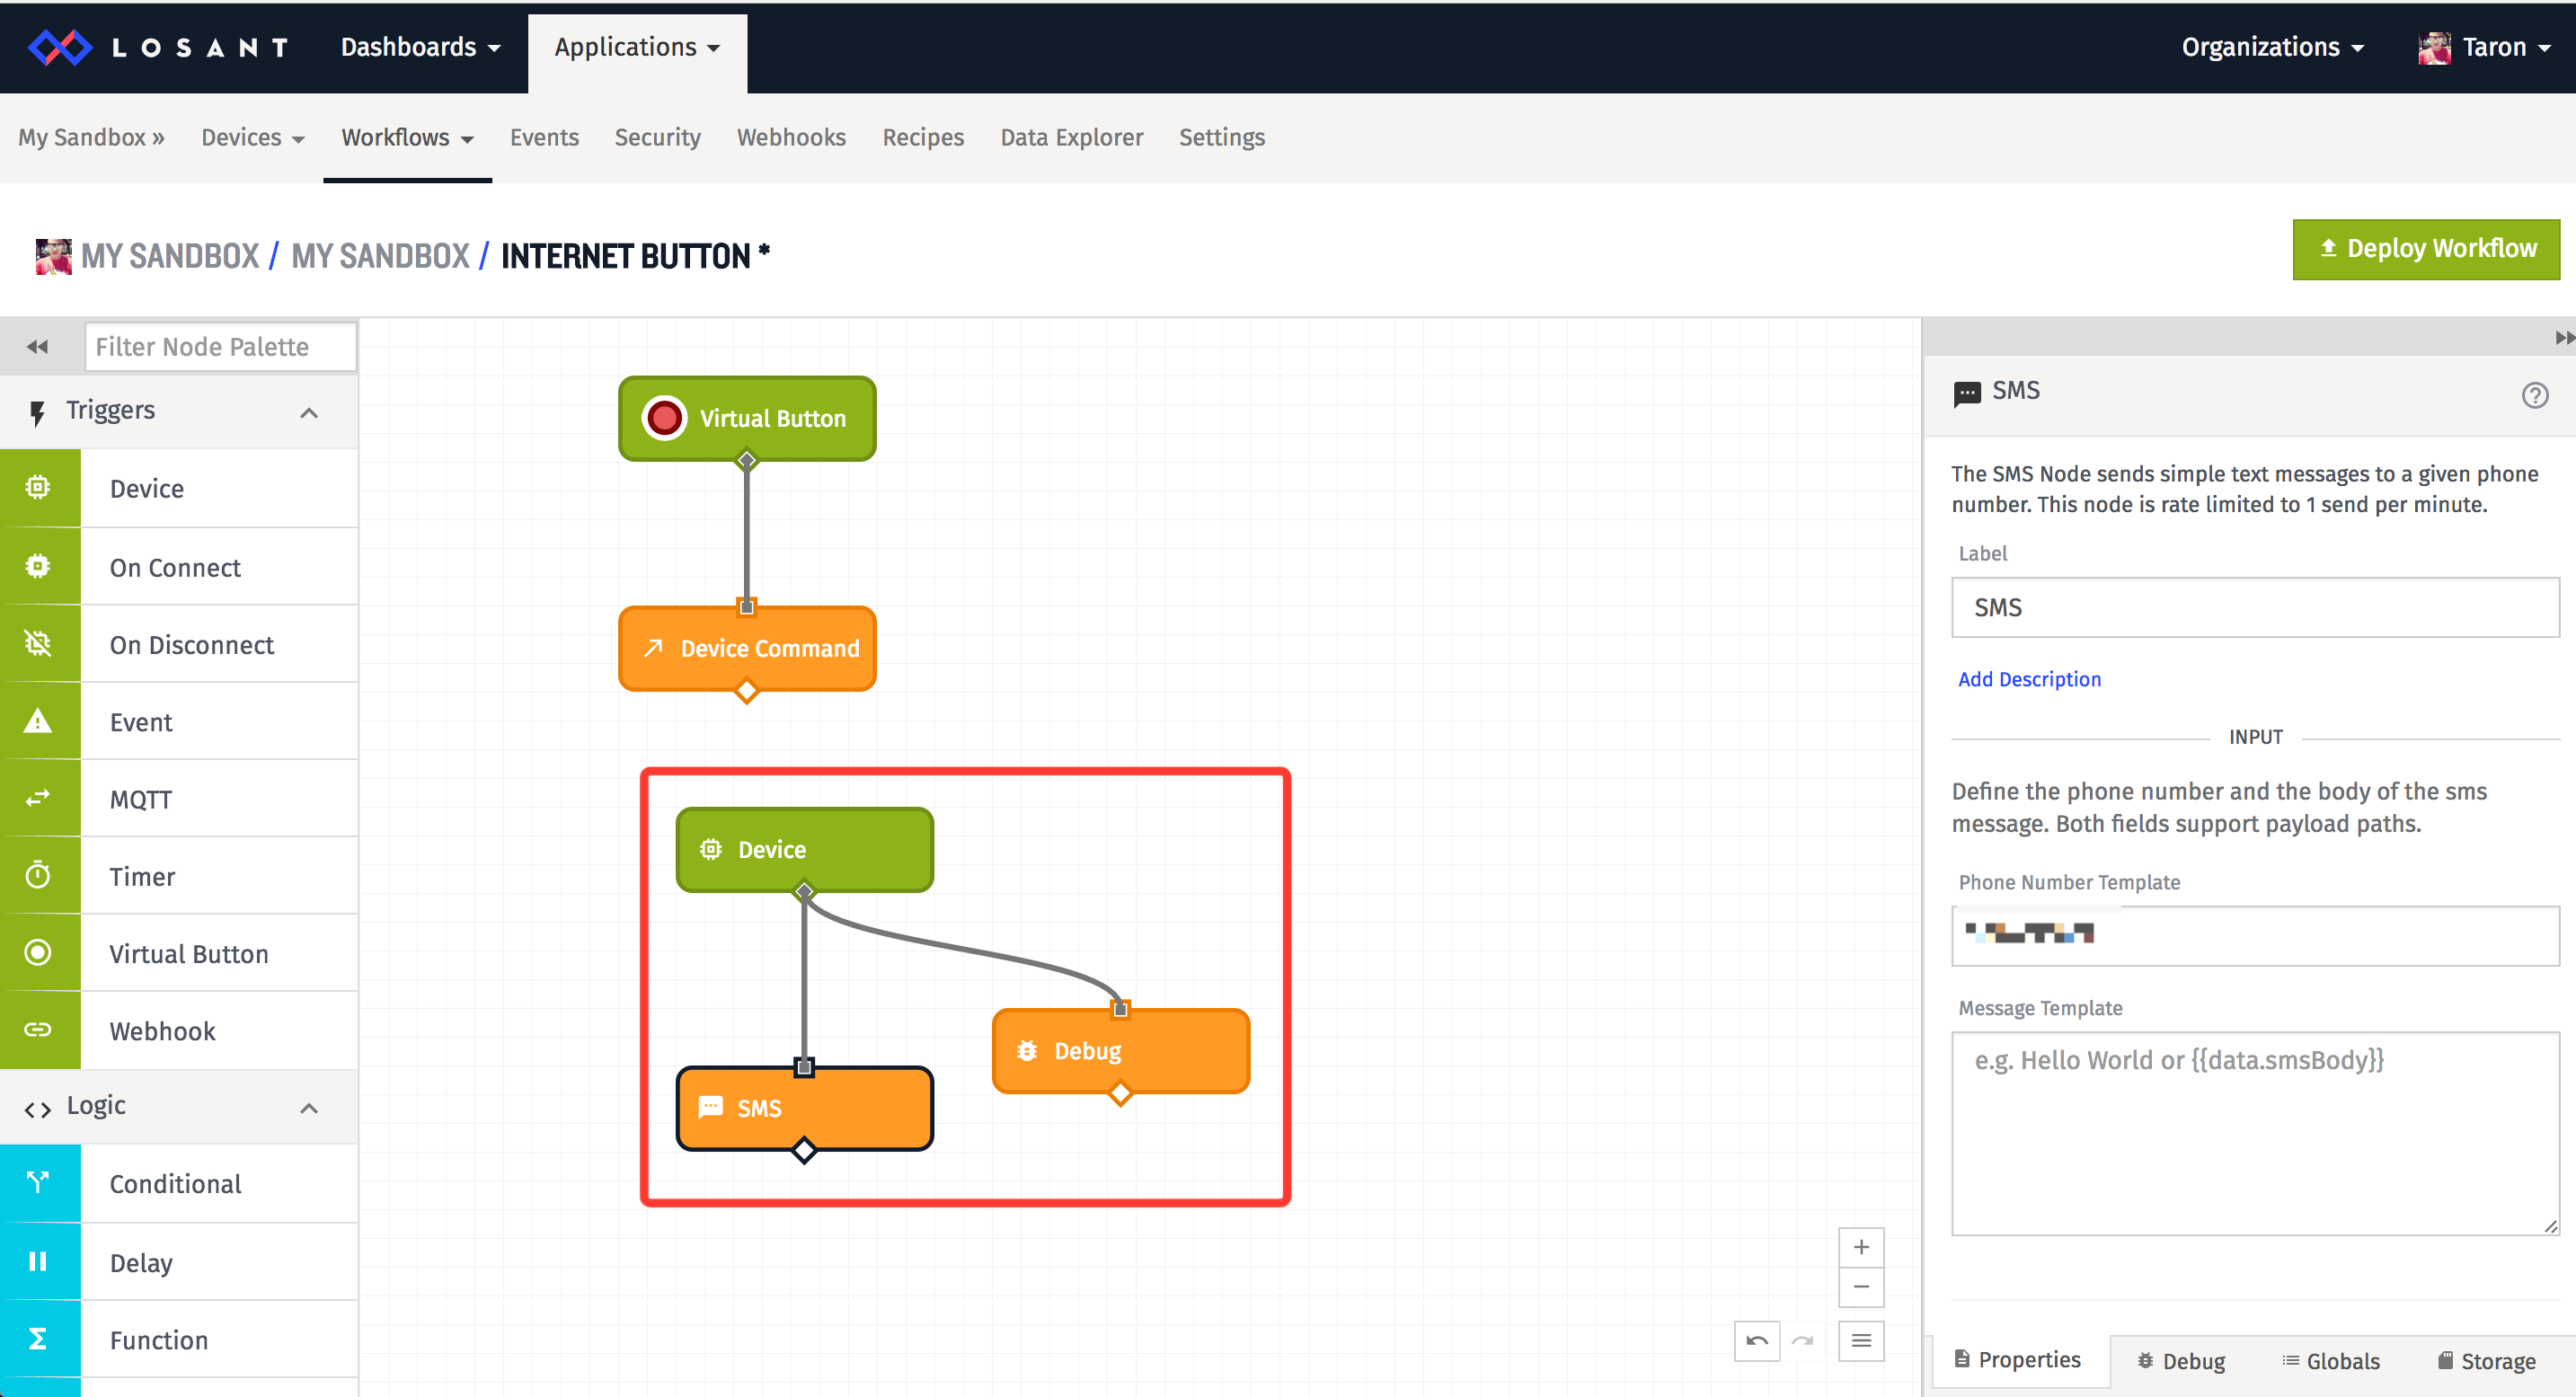 losant-workflow-sms.png